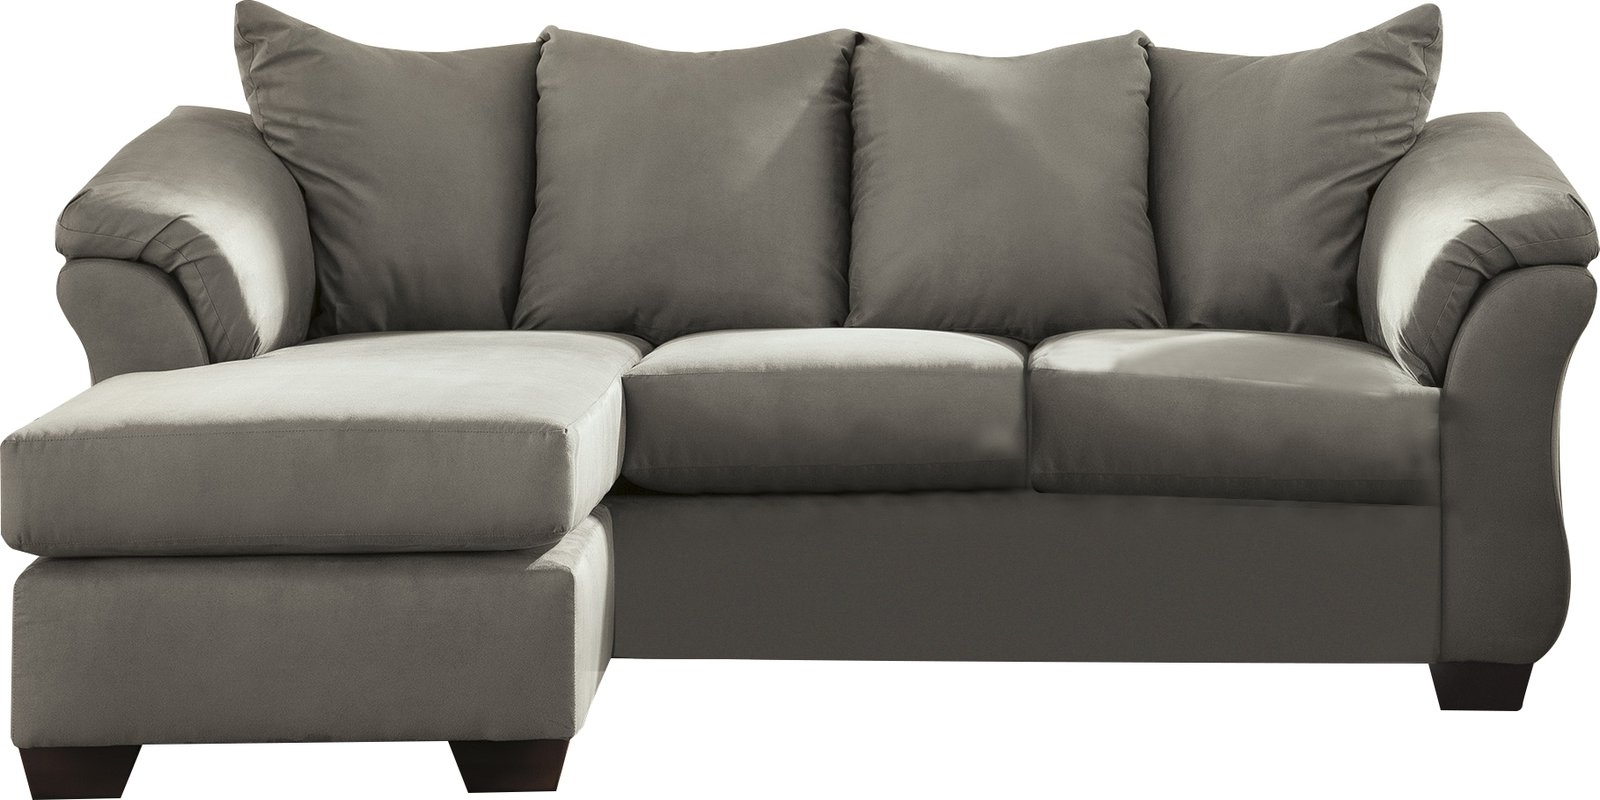 Wayfair Pertaining To Huntsville Al Sectional Sofas (View 14 of 15)